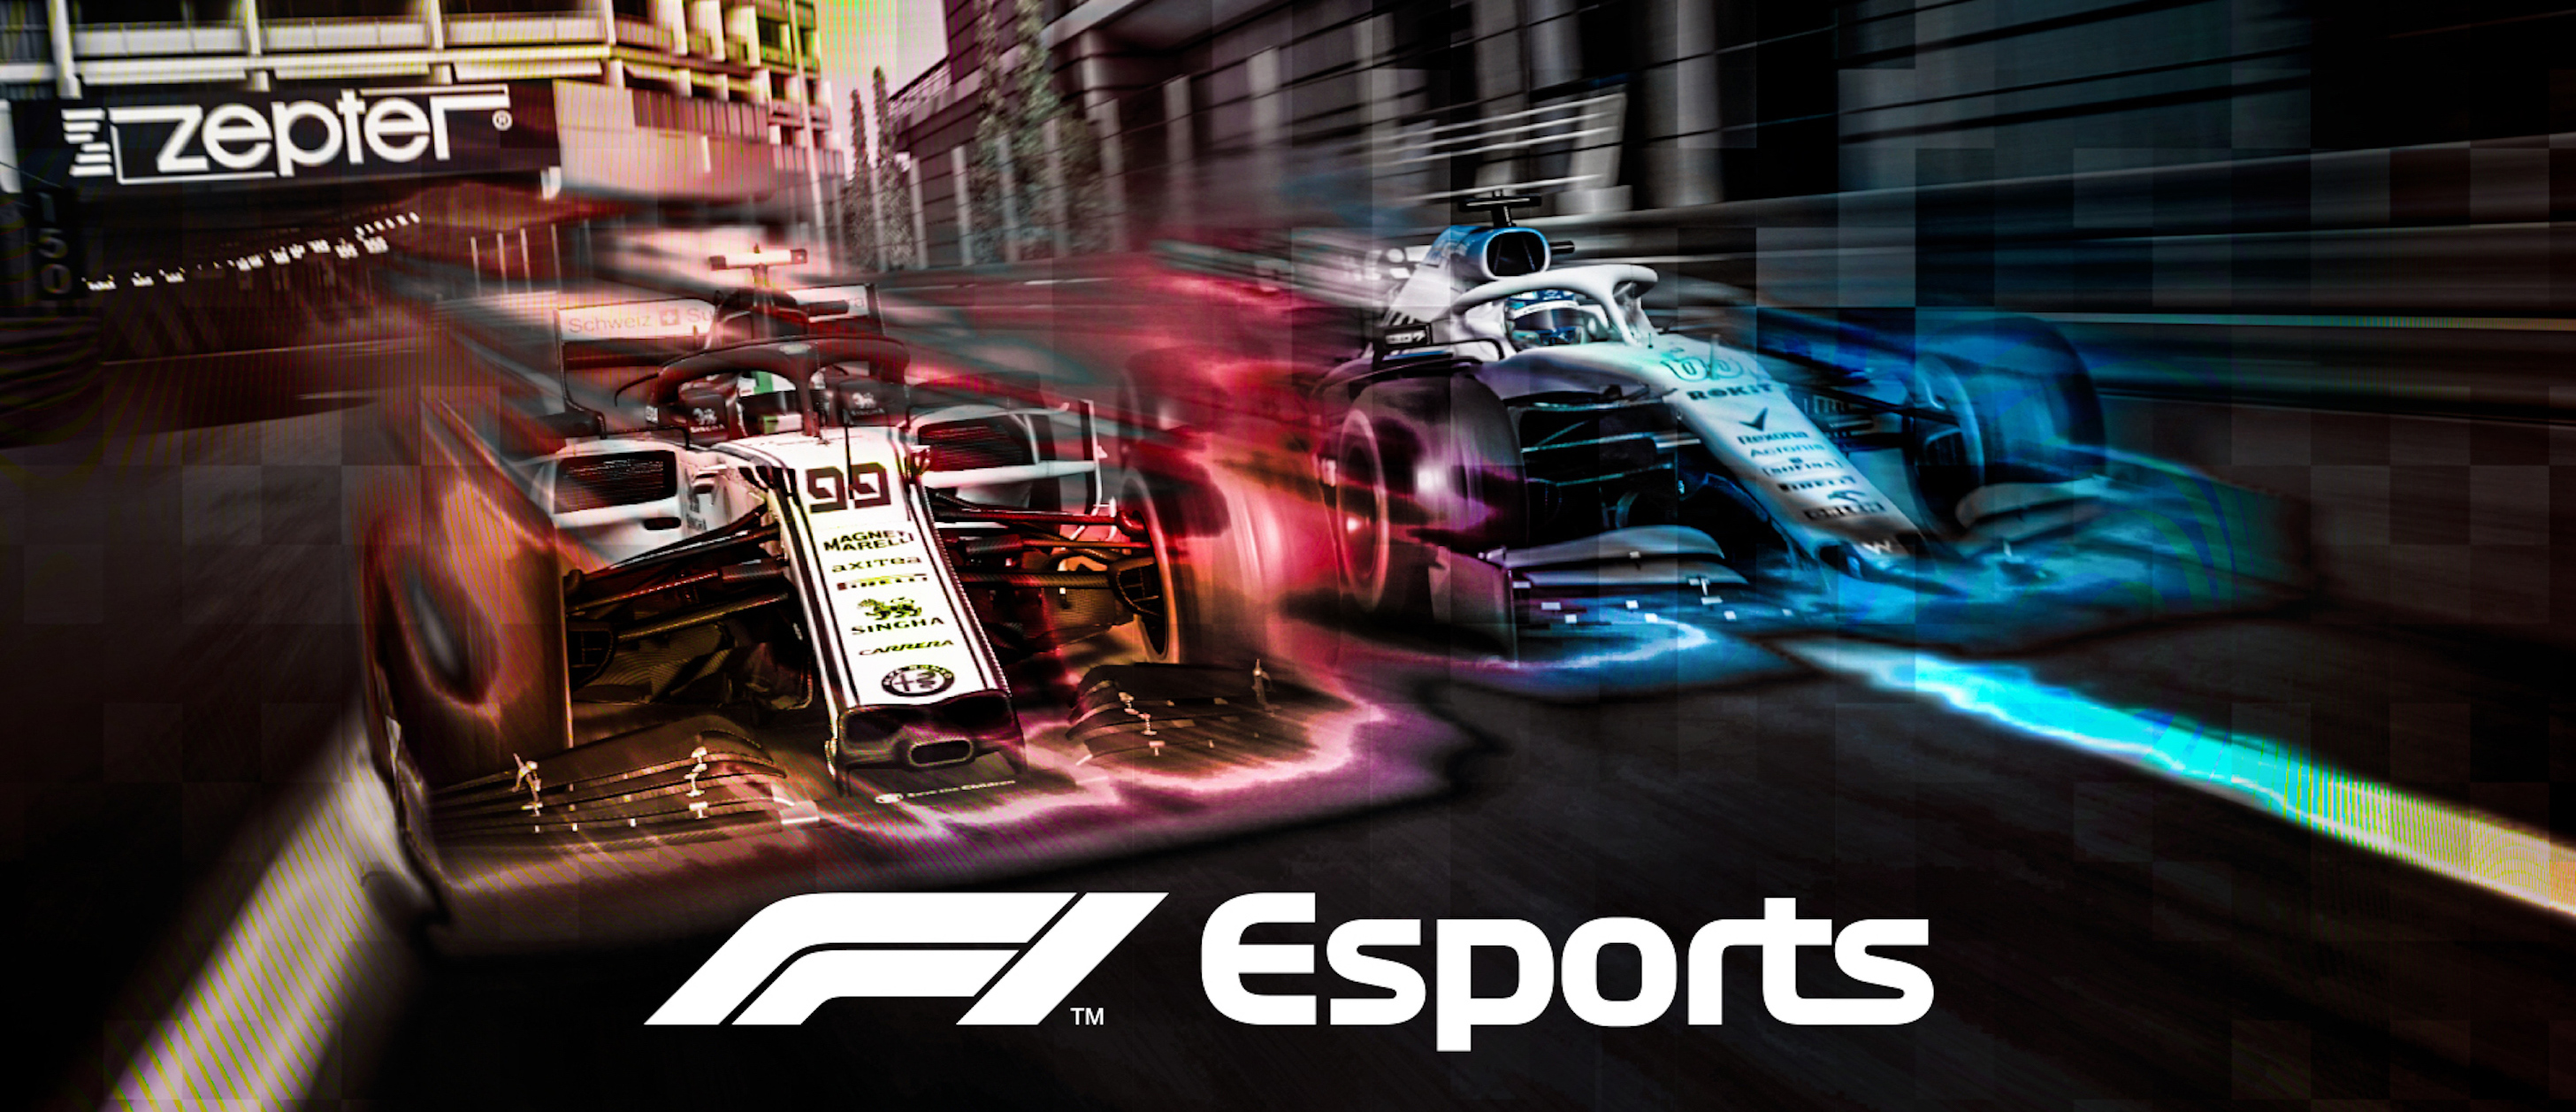 Eight Formula 1 Stars Line Up For Virtual Monaco Grand Prix!